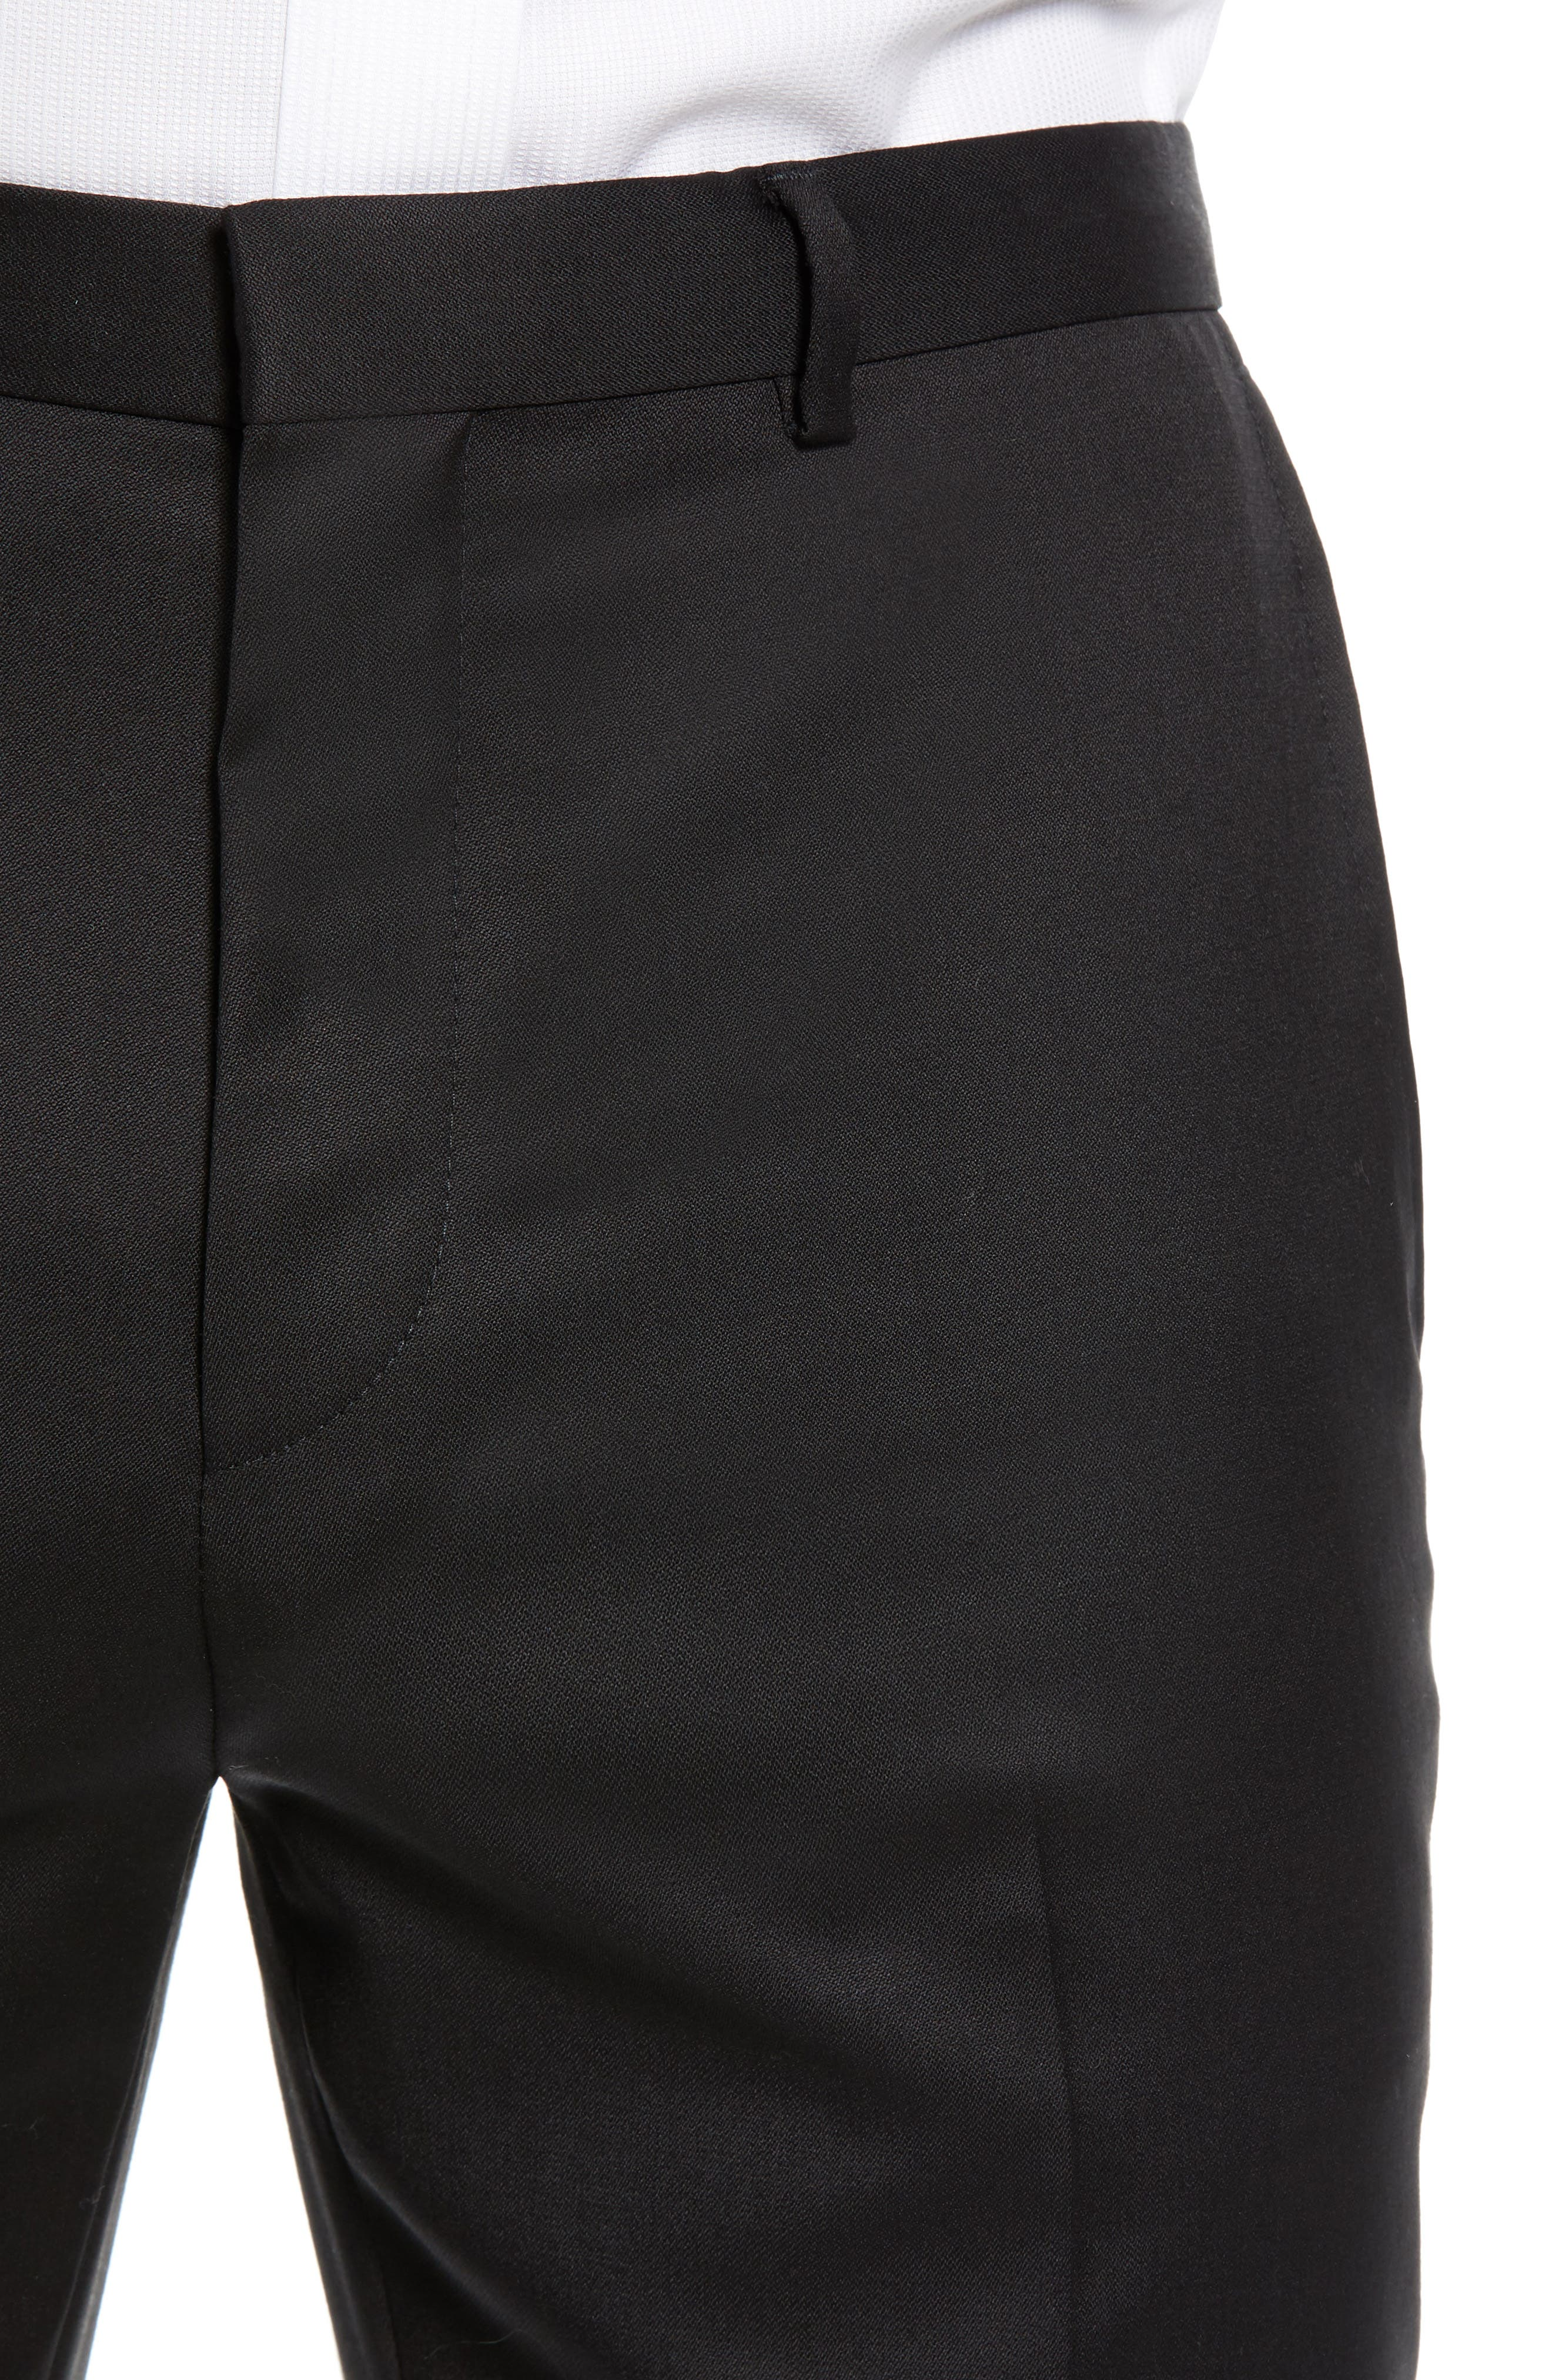 Hartley Extra Slim Trousers,                             Alternate thumbnail 4, color,                             001